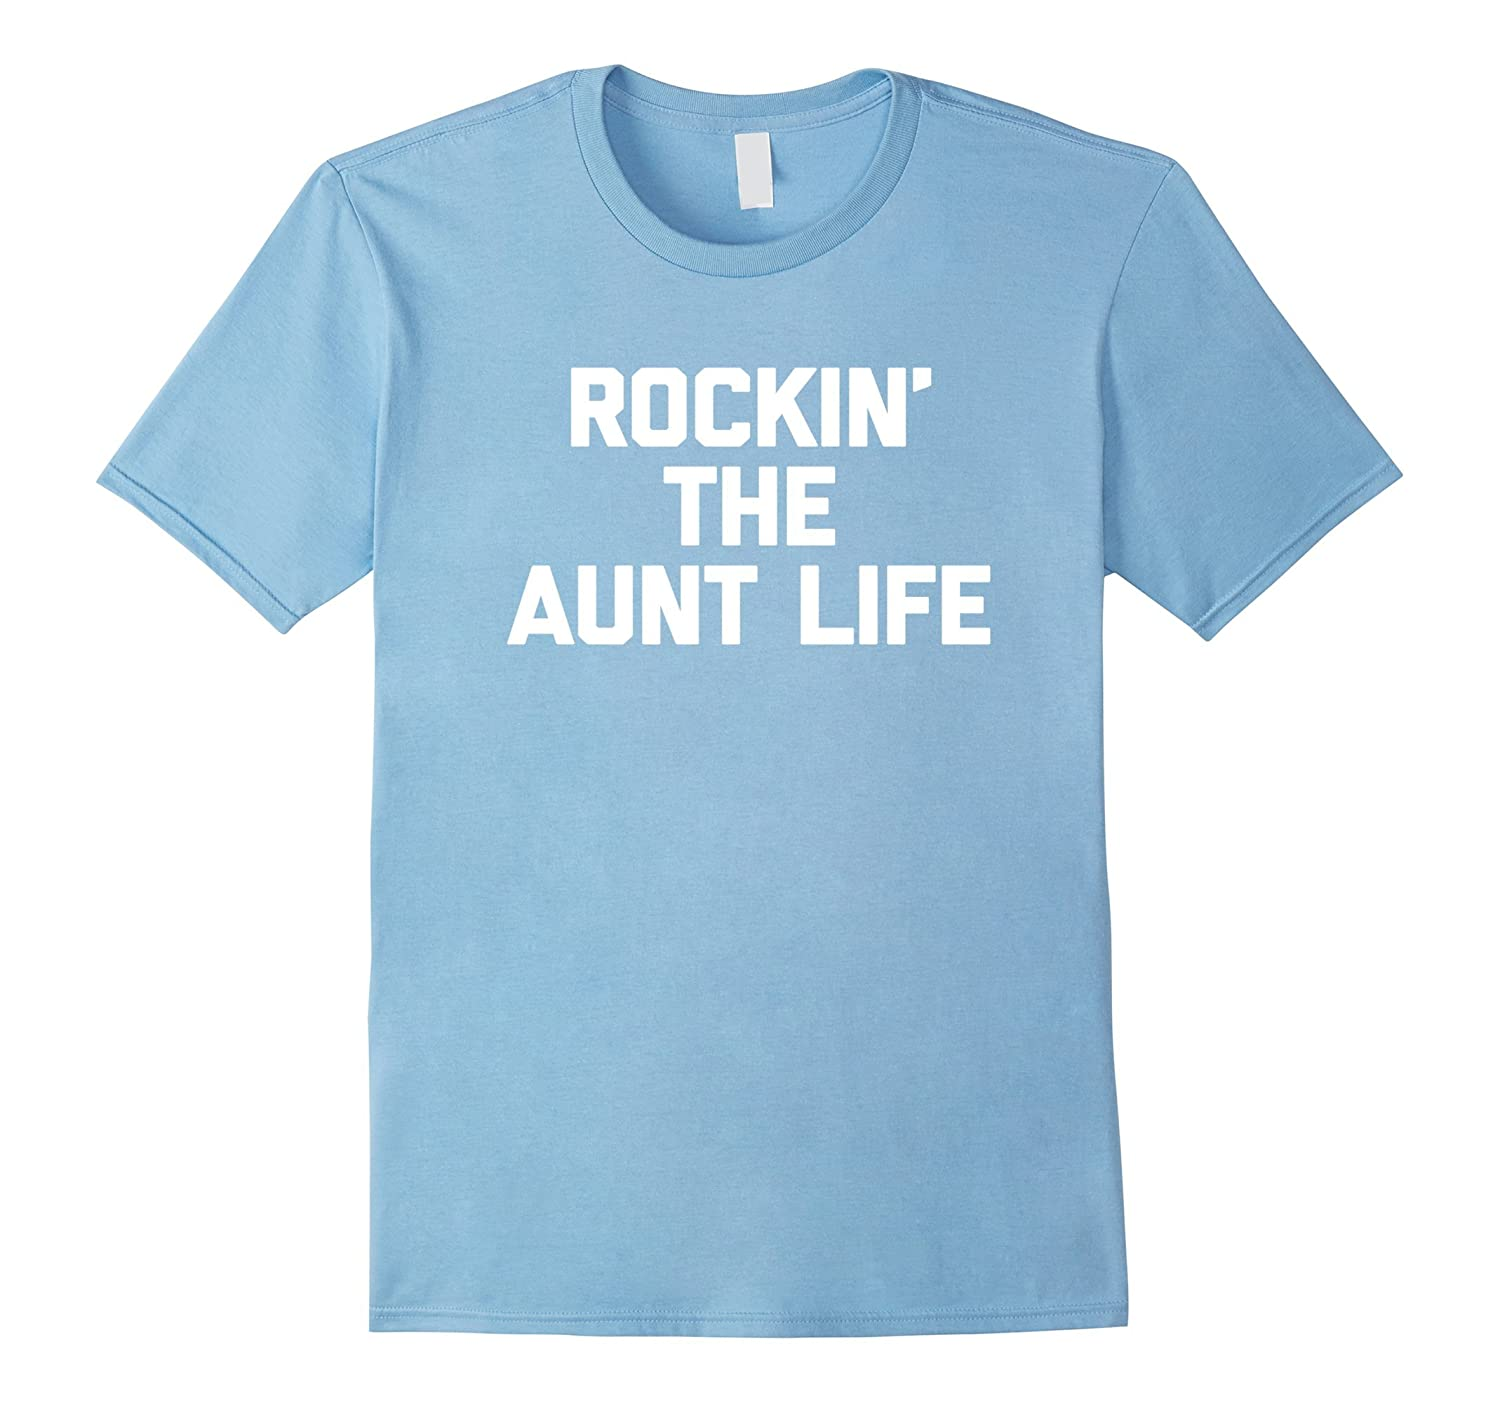 Rockin The Aunt Life T-Shirt funny saying sarcastic novelty-CD